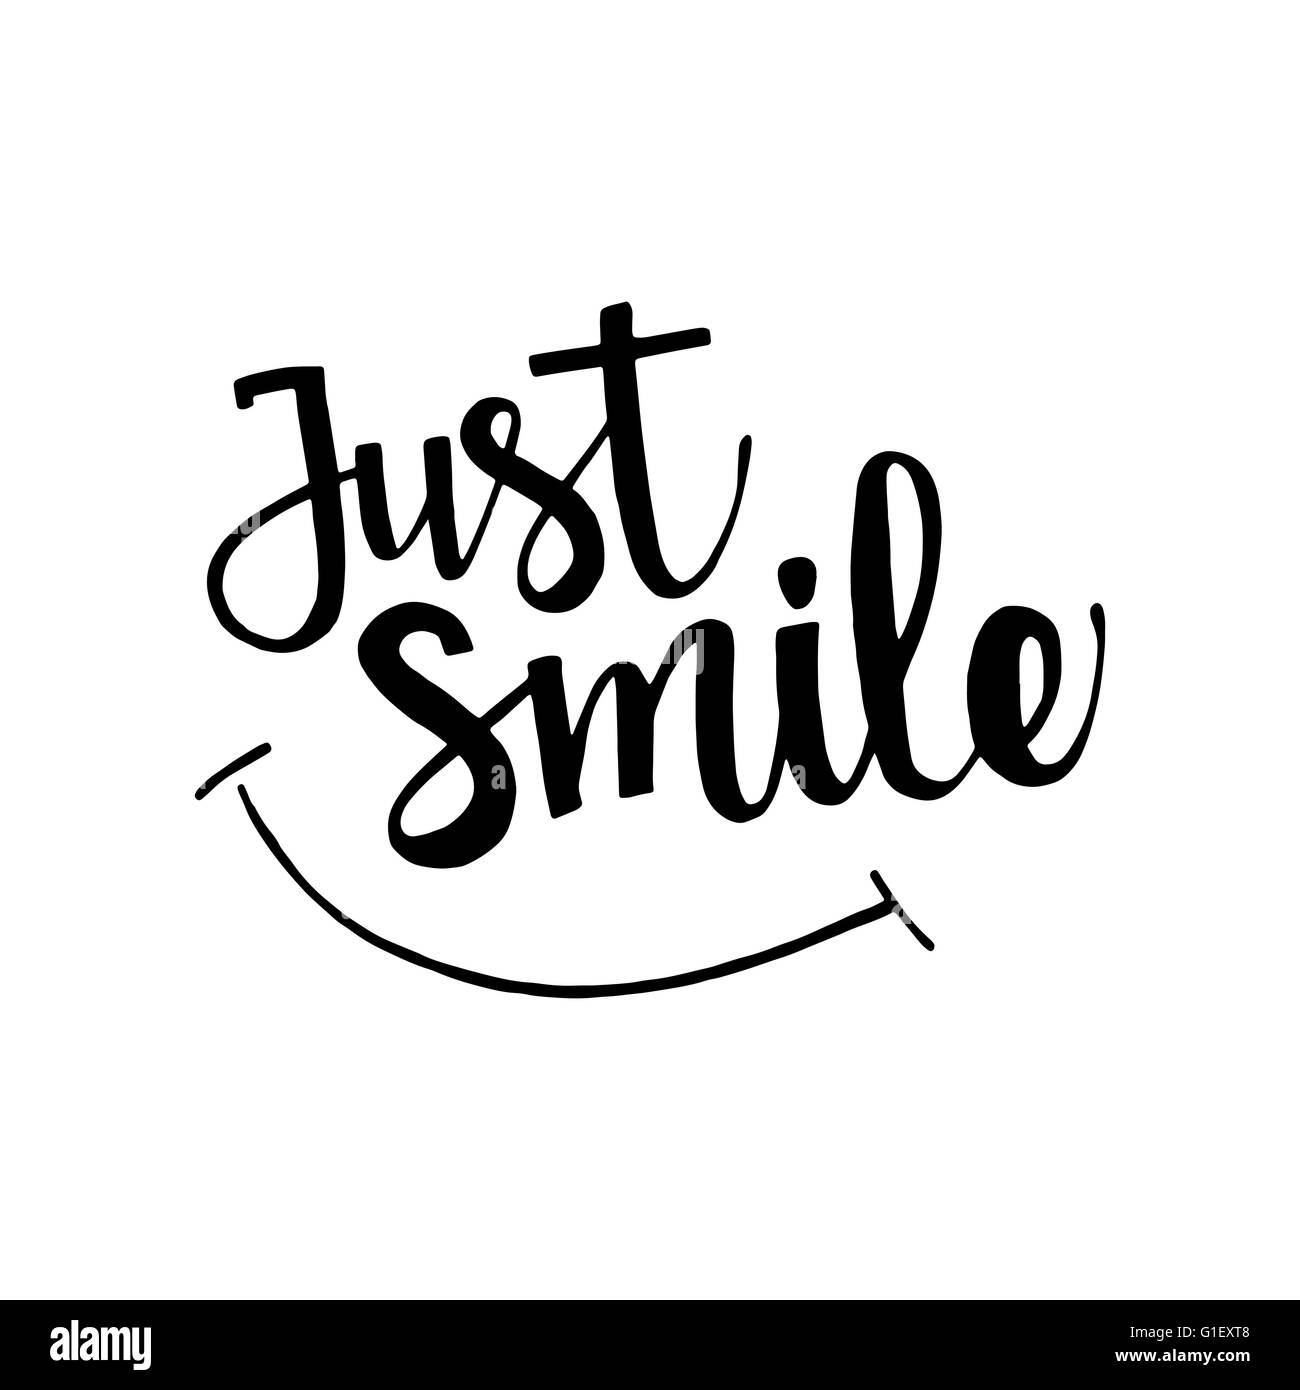 Just Smile Phrase Handwritten Lettering Inspirational Quote